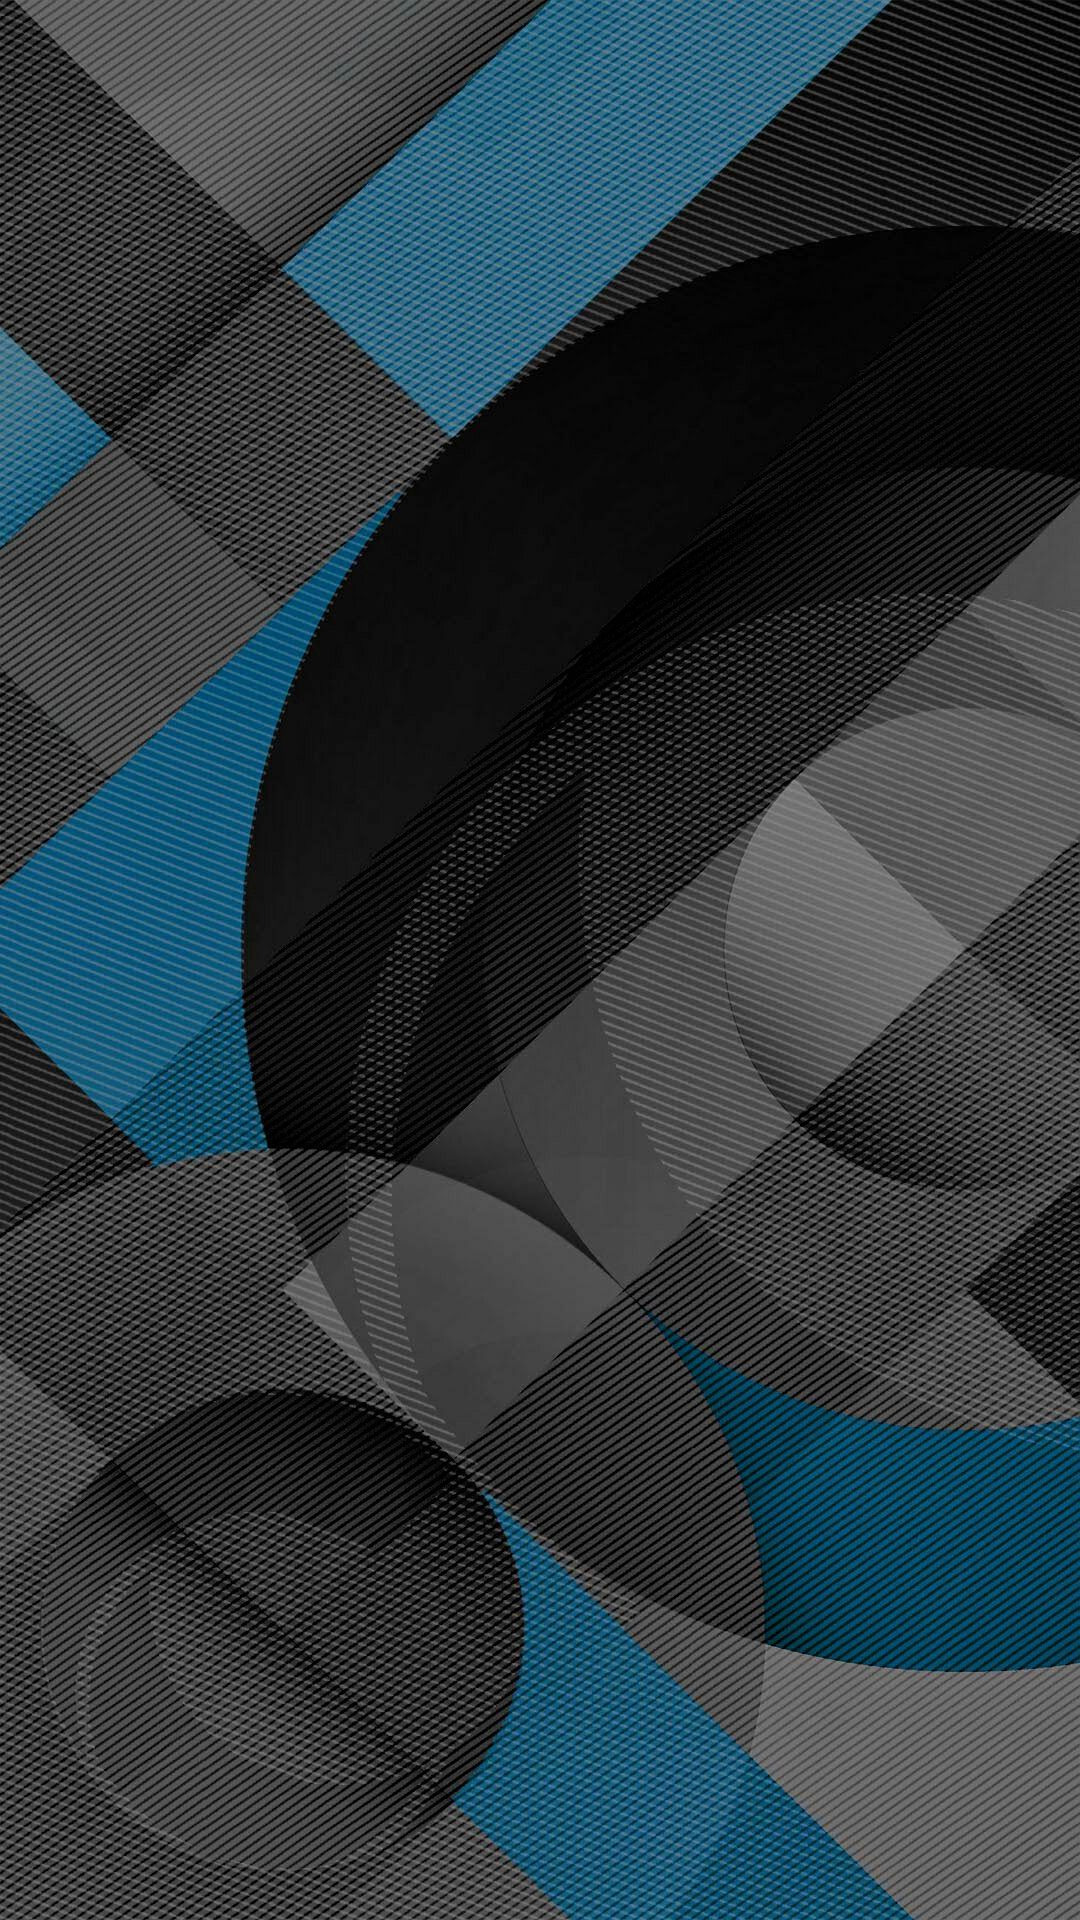 1080x1920 Blue Grey and Black Geometric Wallpaper | *Abstract and ...